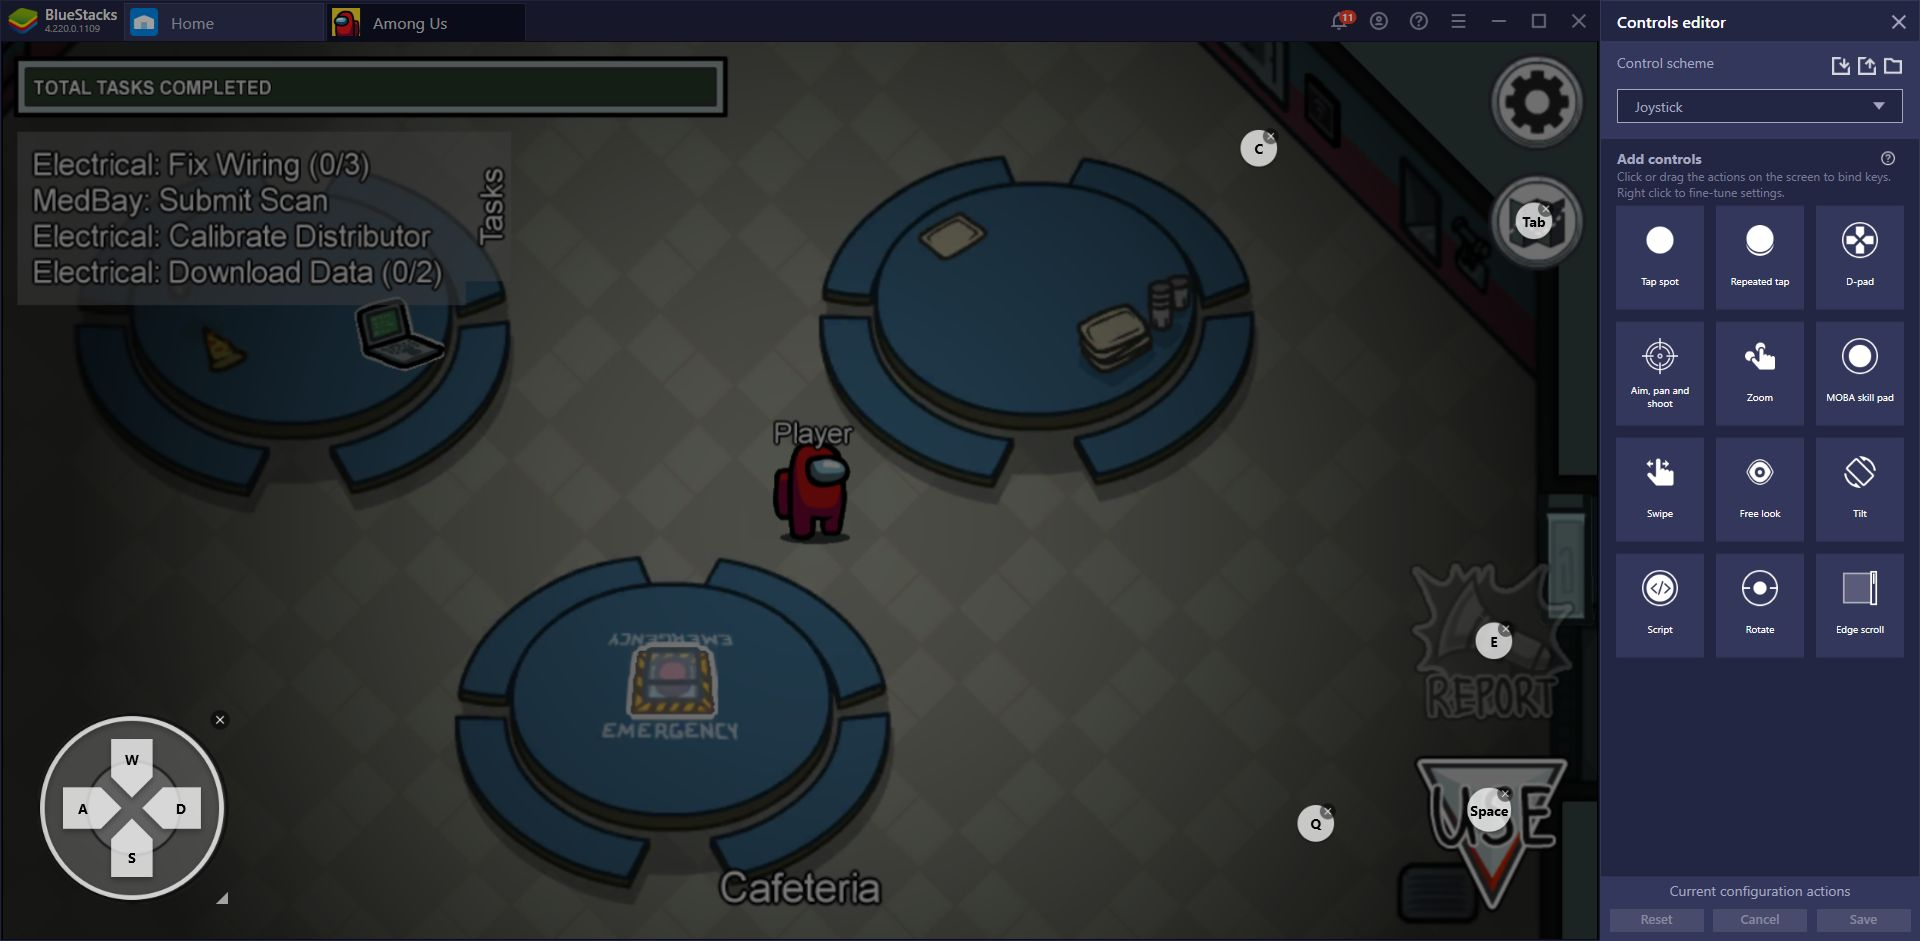 Among Us On Mac And Pc Bluestacks Tips And Tricks To Win Every Match